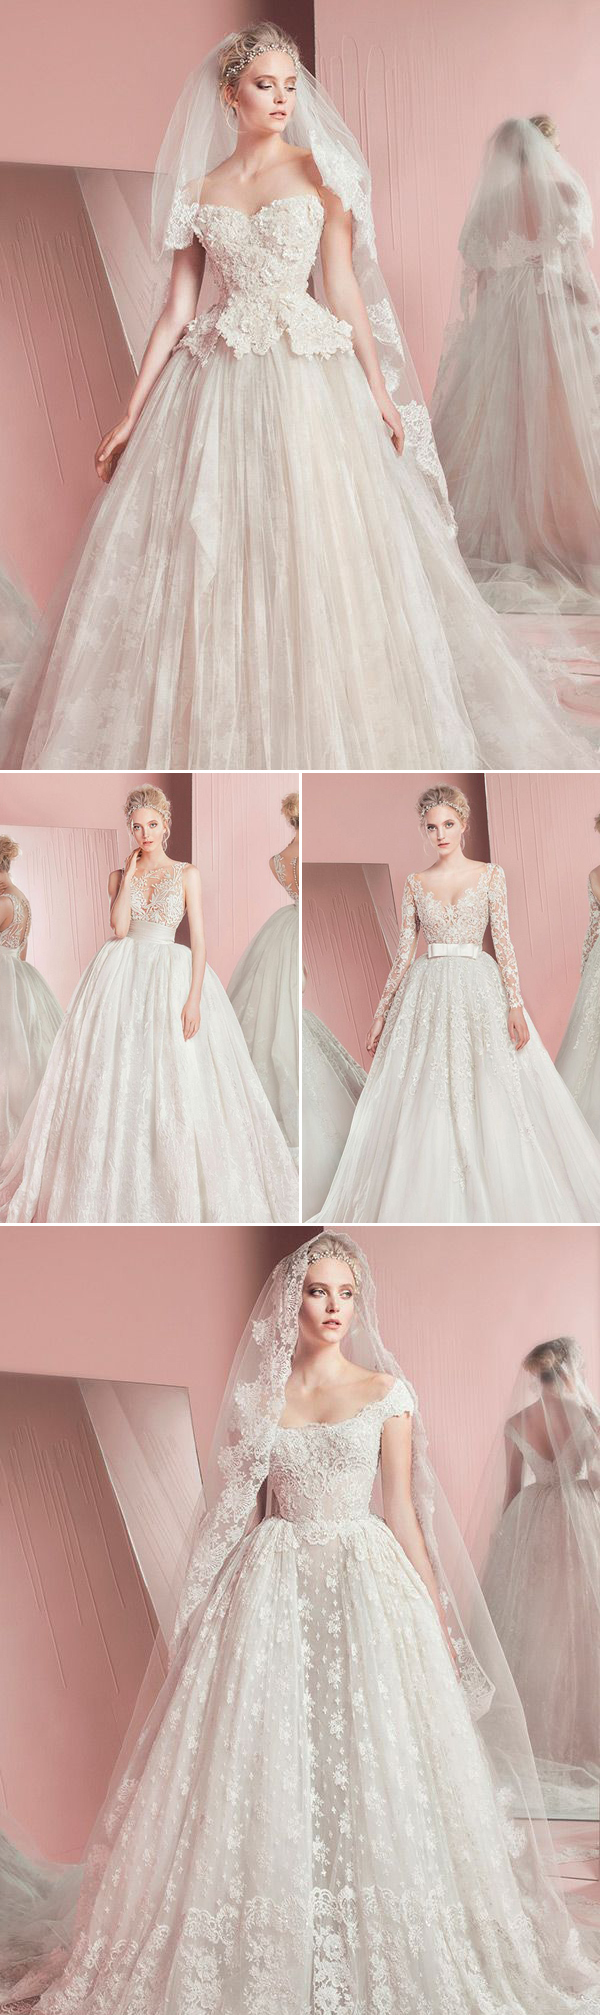 35 Sweet Baby Doll-Inspired Wedding Dresses You\'ll Love! - Praise ...